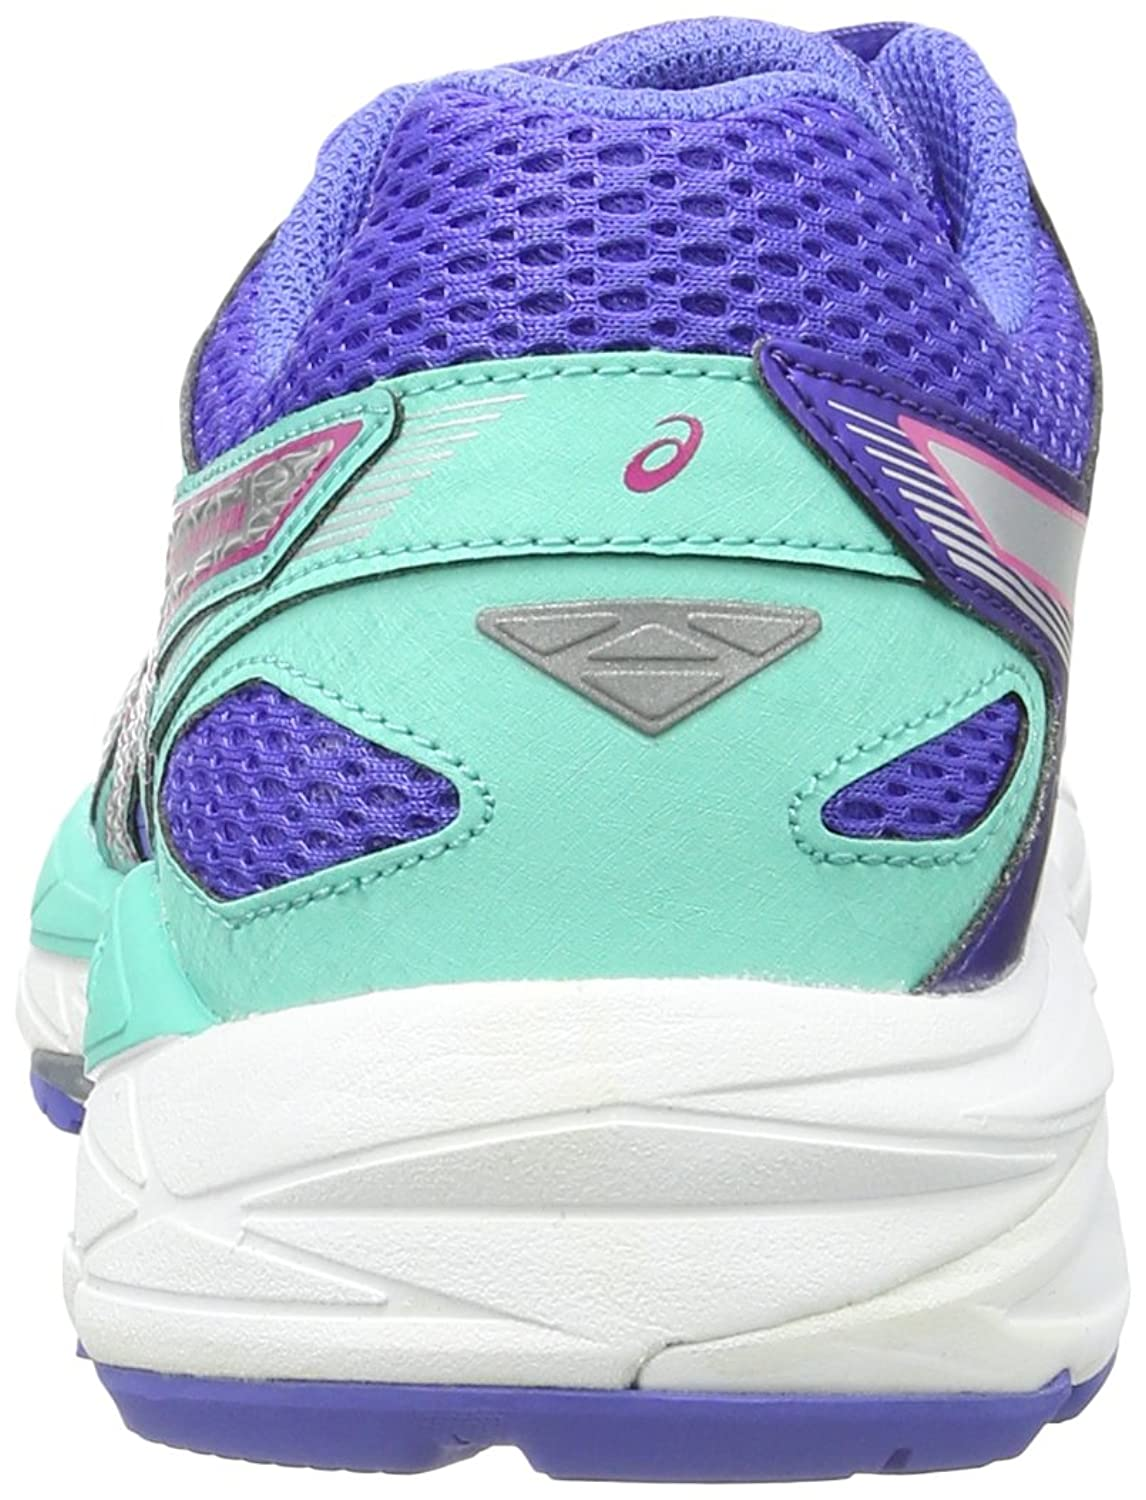 Asics Gel-Fortitude 7, Women's Low-Top Sneakers, (Lila)